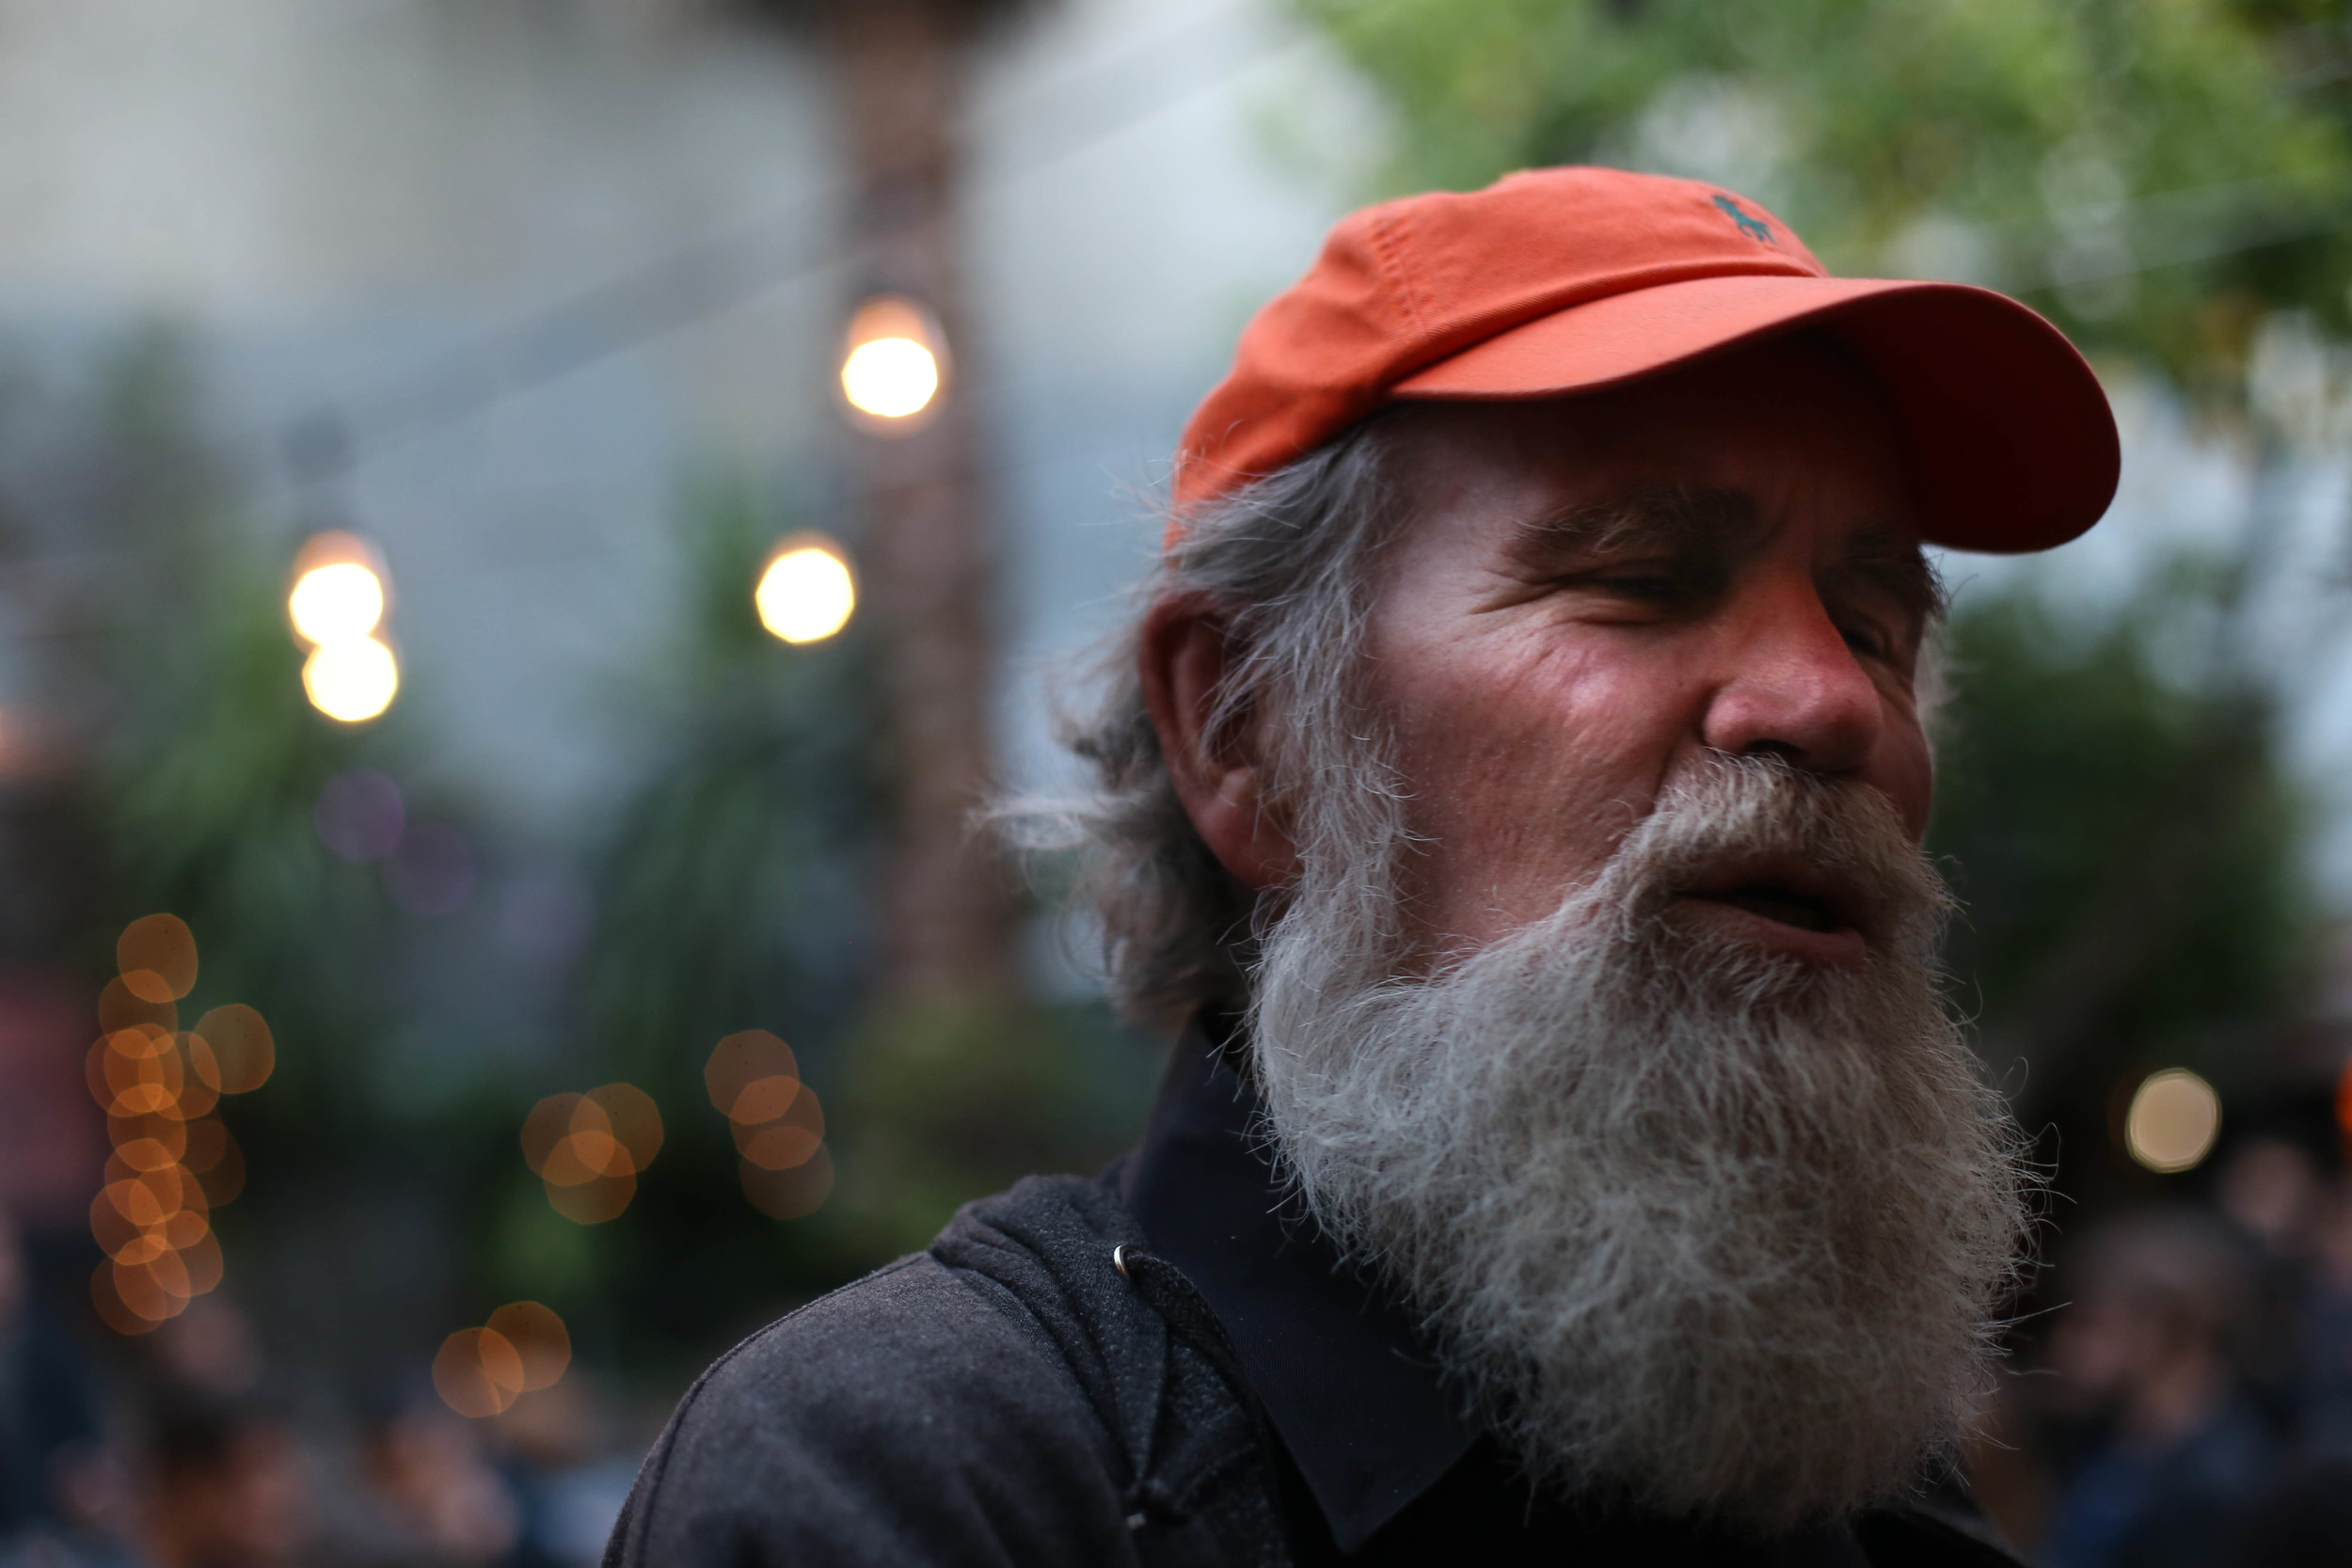 Terry Milne, has lived in Bernal Heights since 1970 came to the event to support the community and the businesses he frequented. San Francisco, California Thursday, June 30, 2016